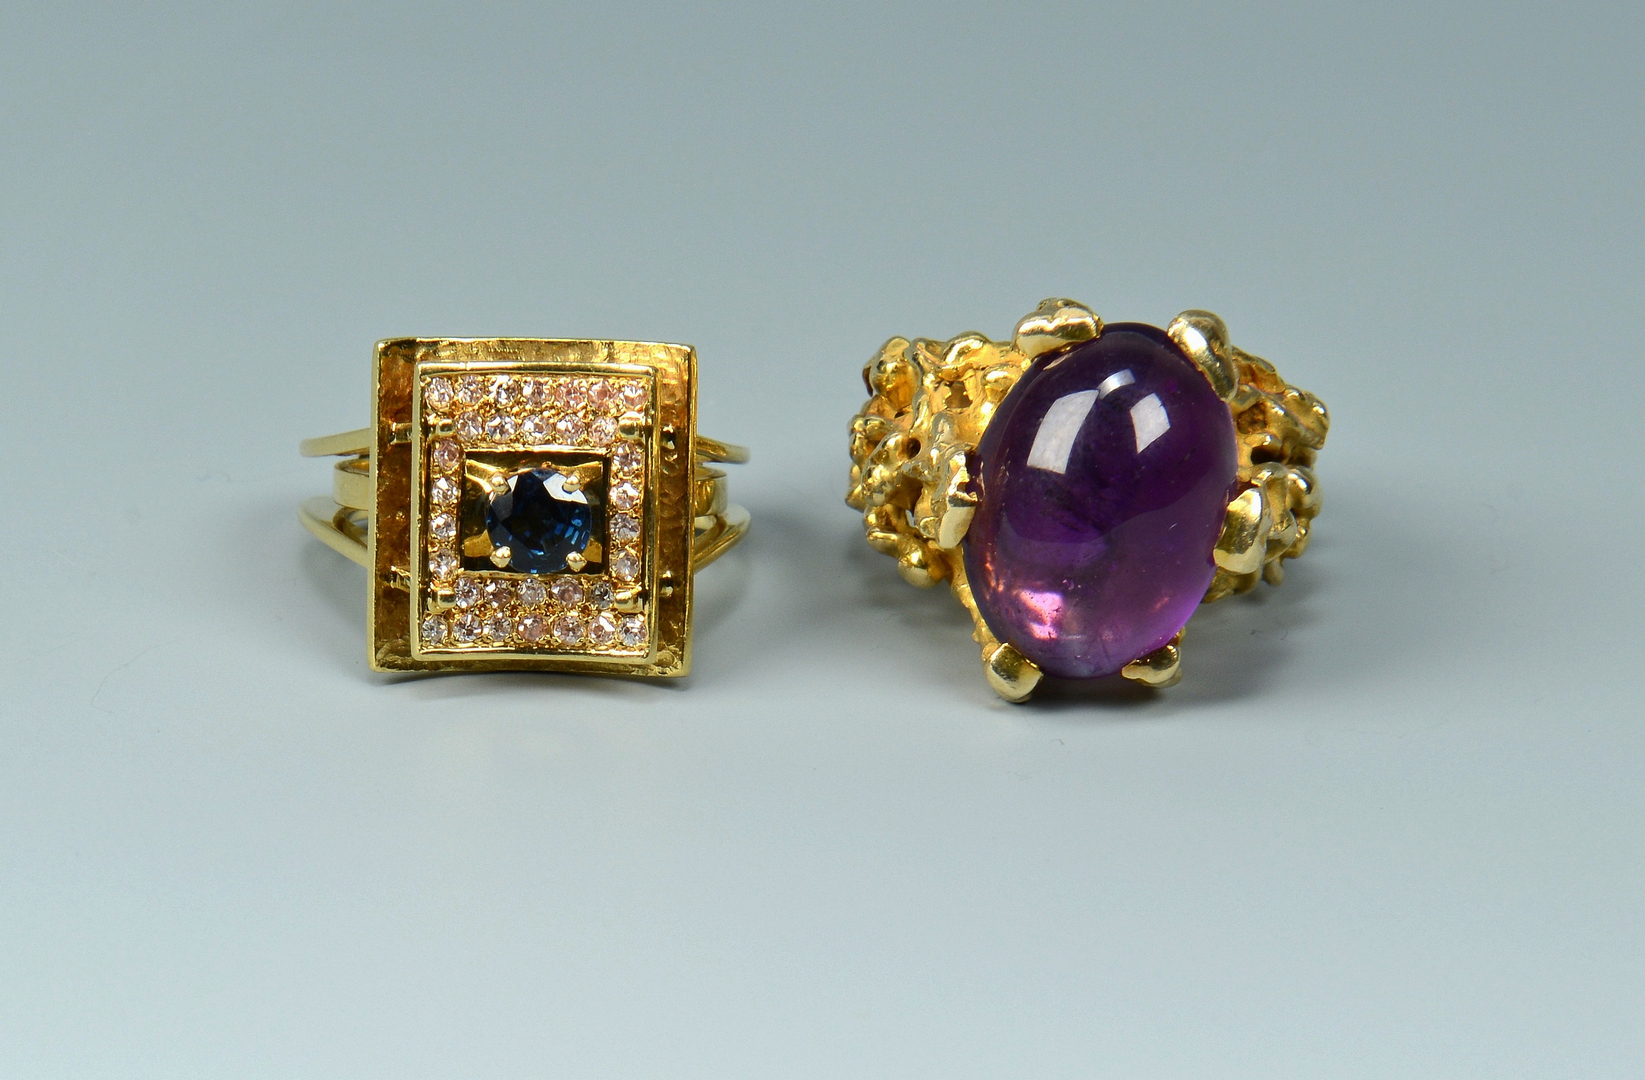 Lot 3088232: Two 14K Colored Stone Rings